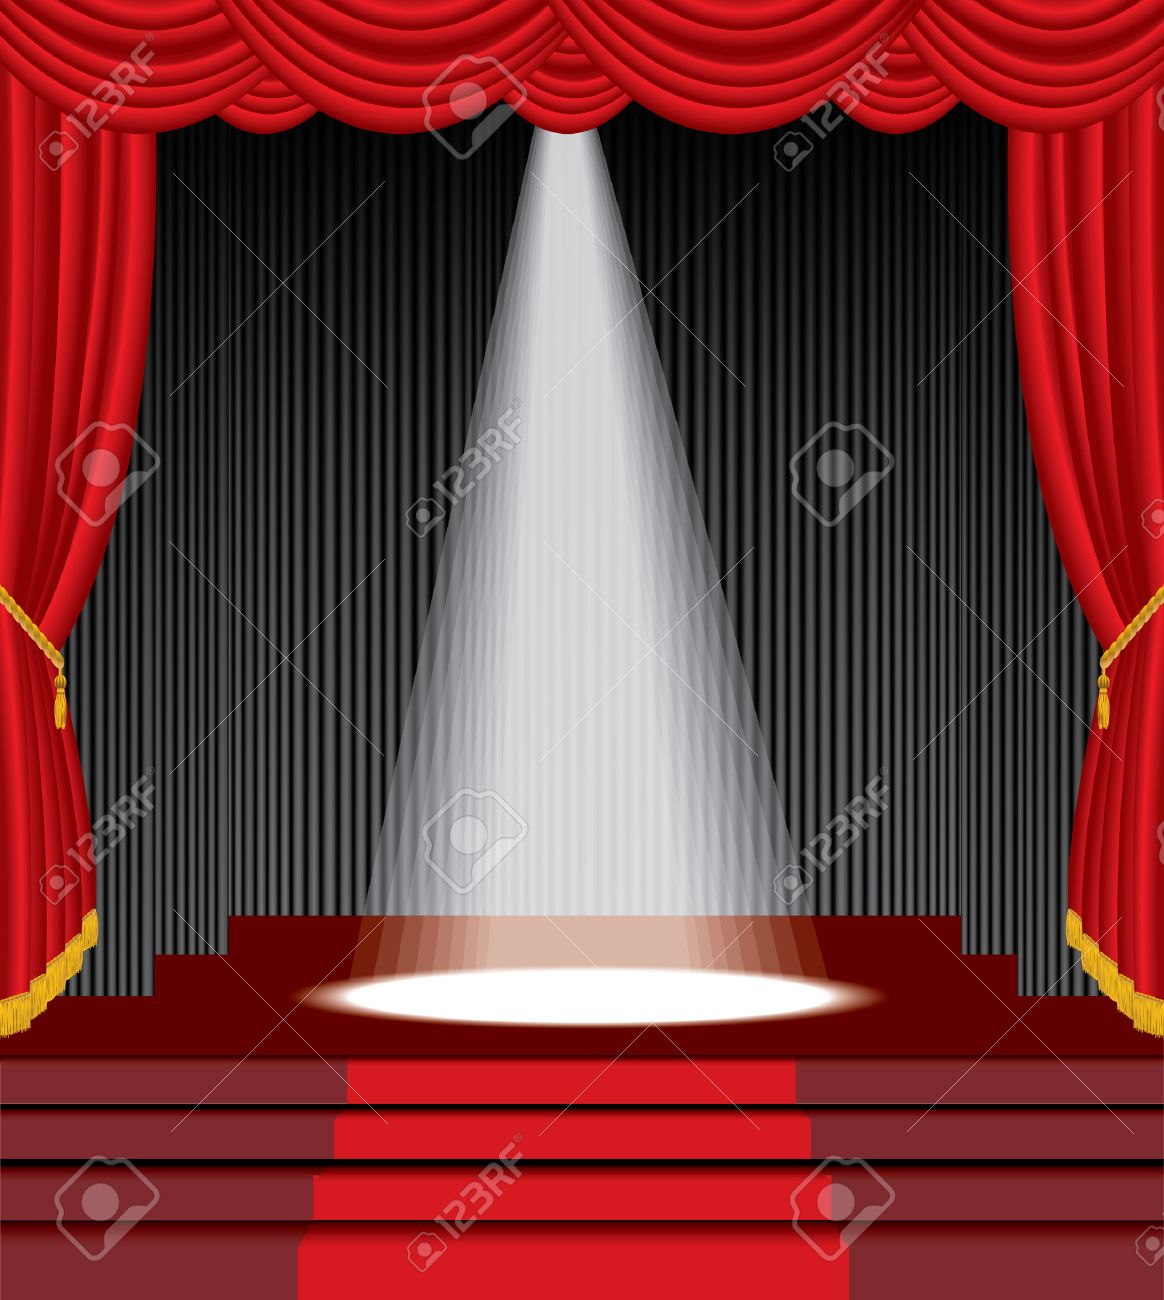 Stock photo dramatic red old fashioned elegant theater stage stock - Stage Theater Stage With Stairs And One White Spot Light